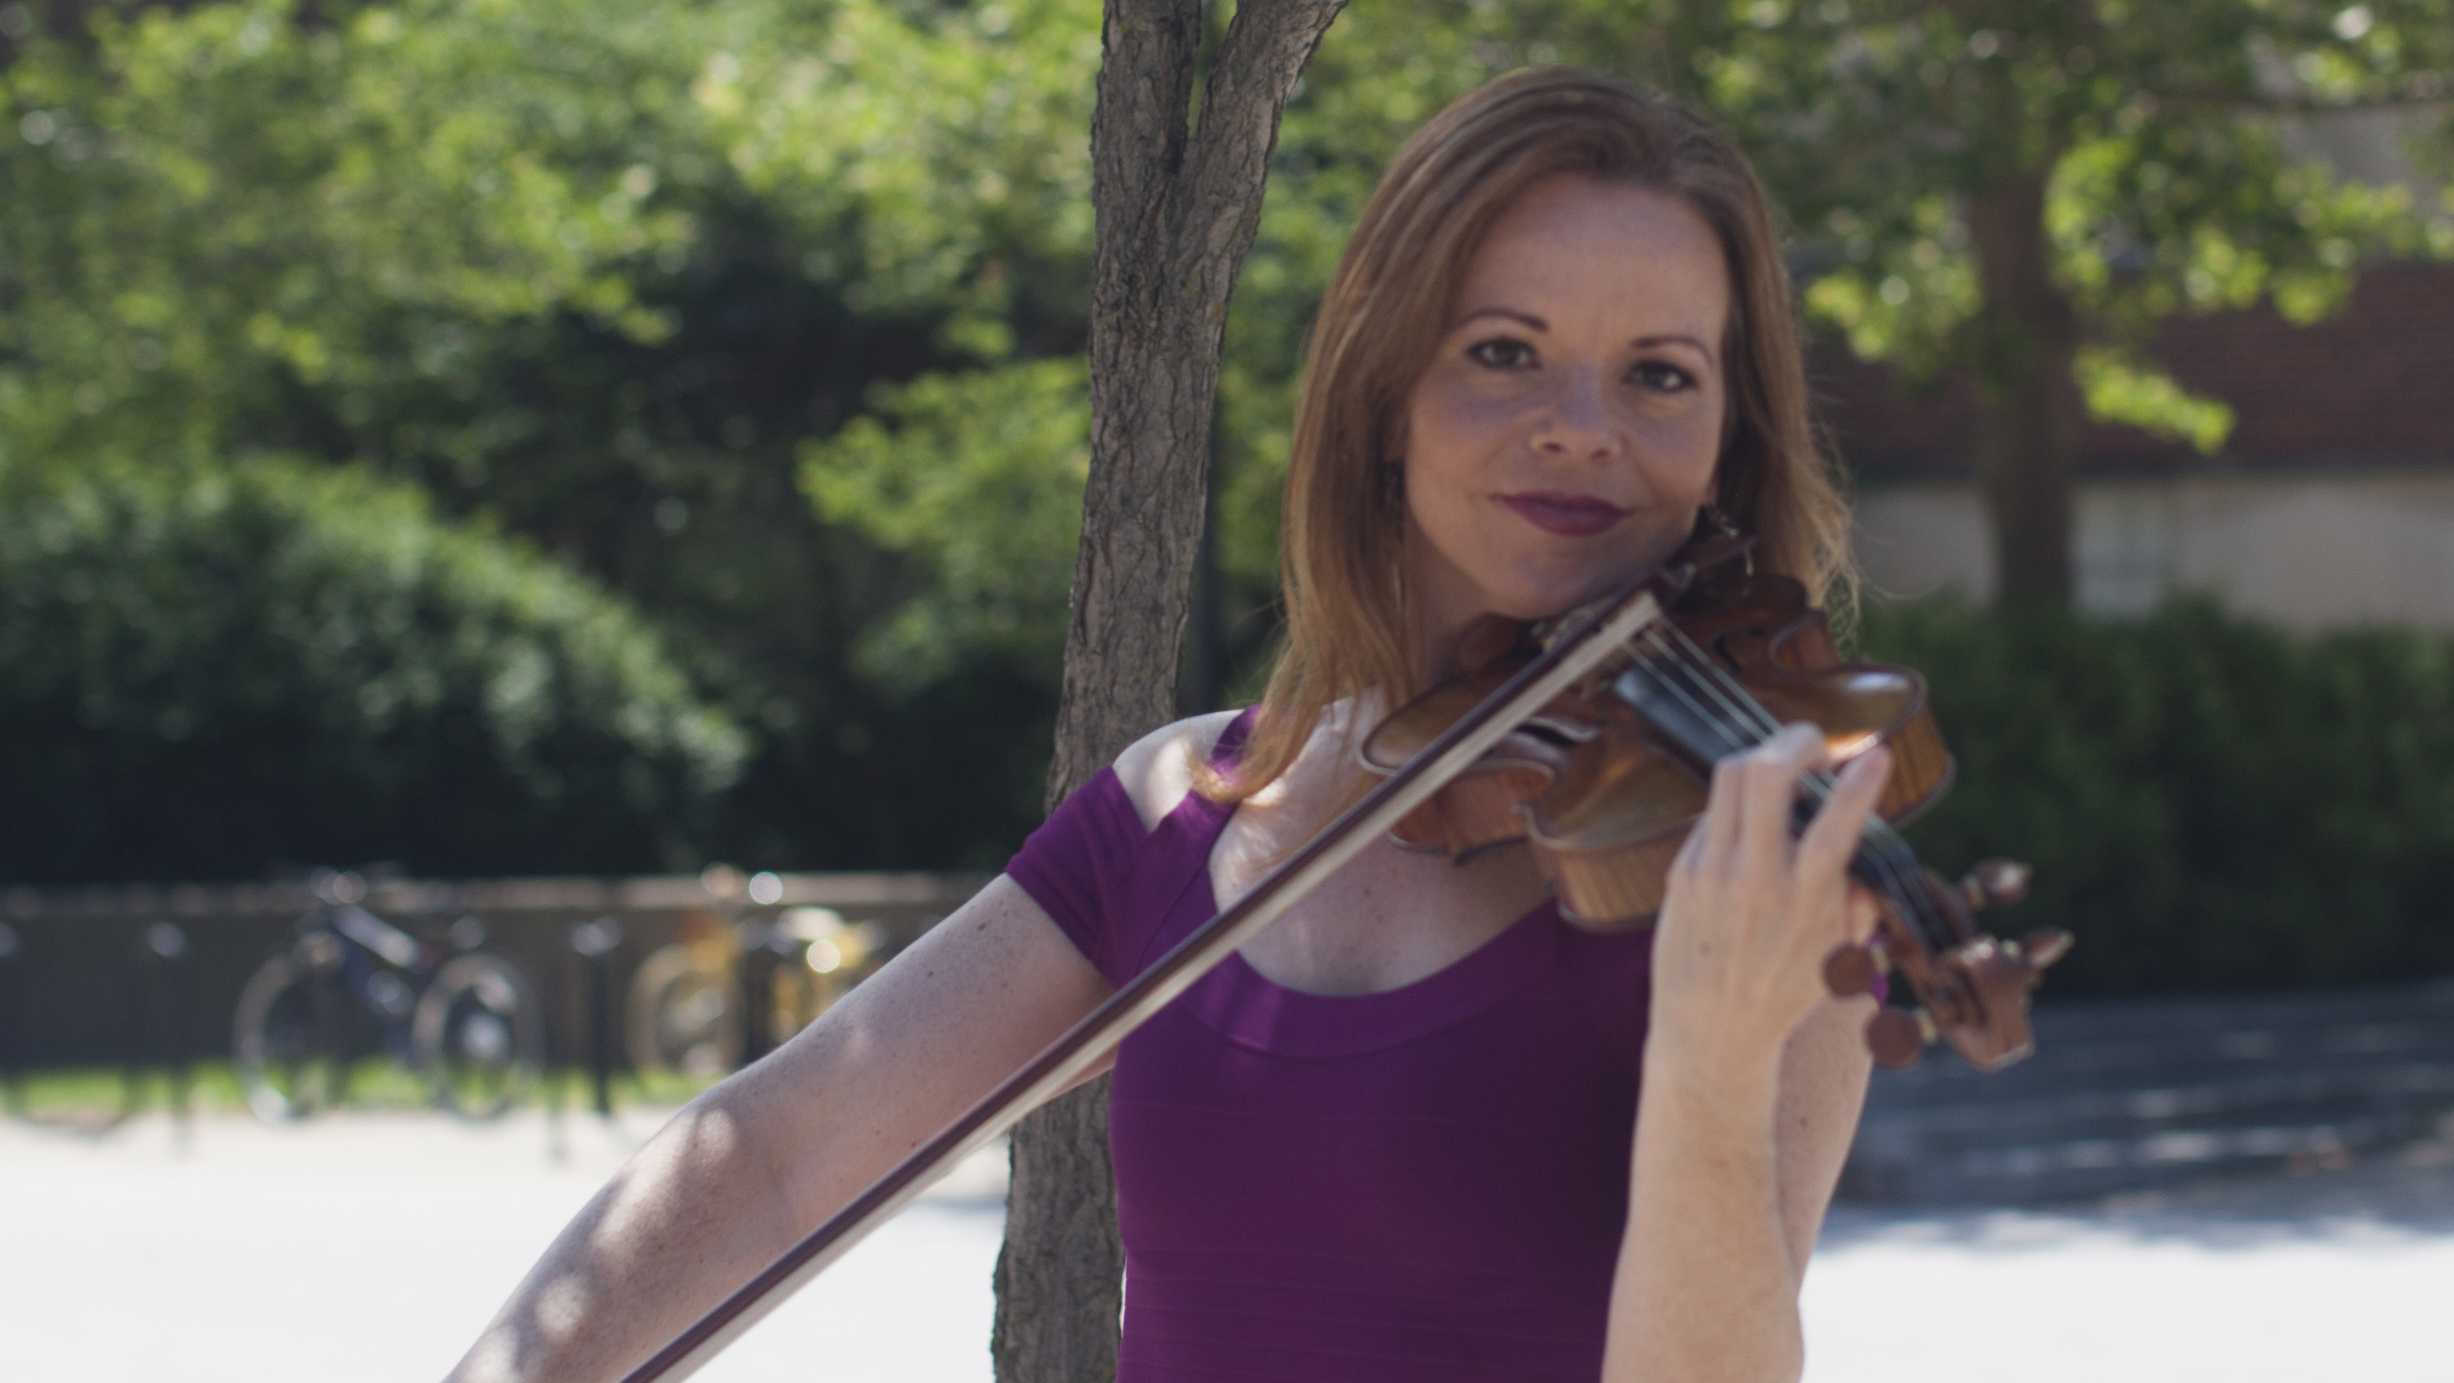 Lisa Dondlinger, a violinist and former Miss Iowa, plays her violin outside the Main Library. Dondlinger returned from Los Angeles to debut her first solo album. ( Hieu Nguyen/The Daily Iowan)